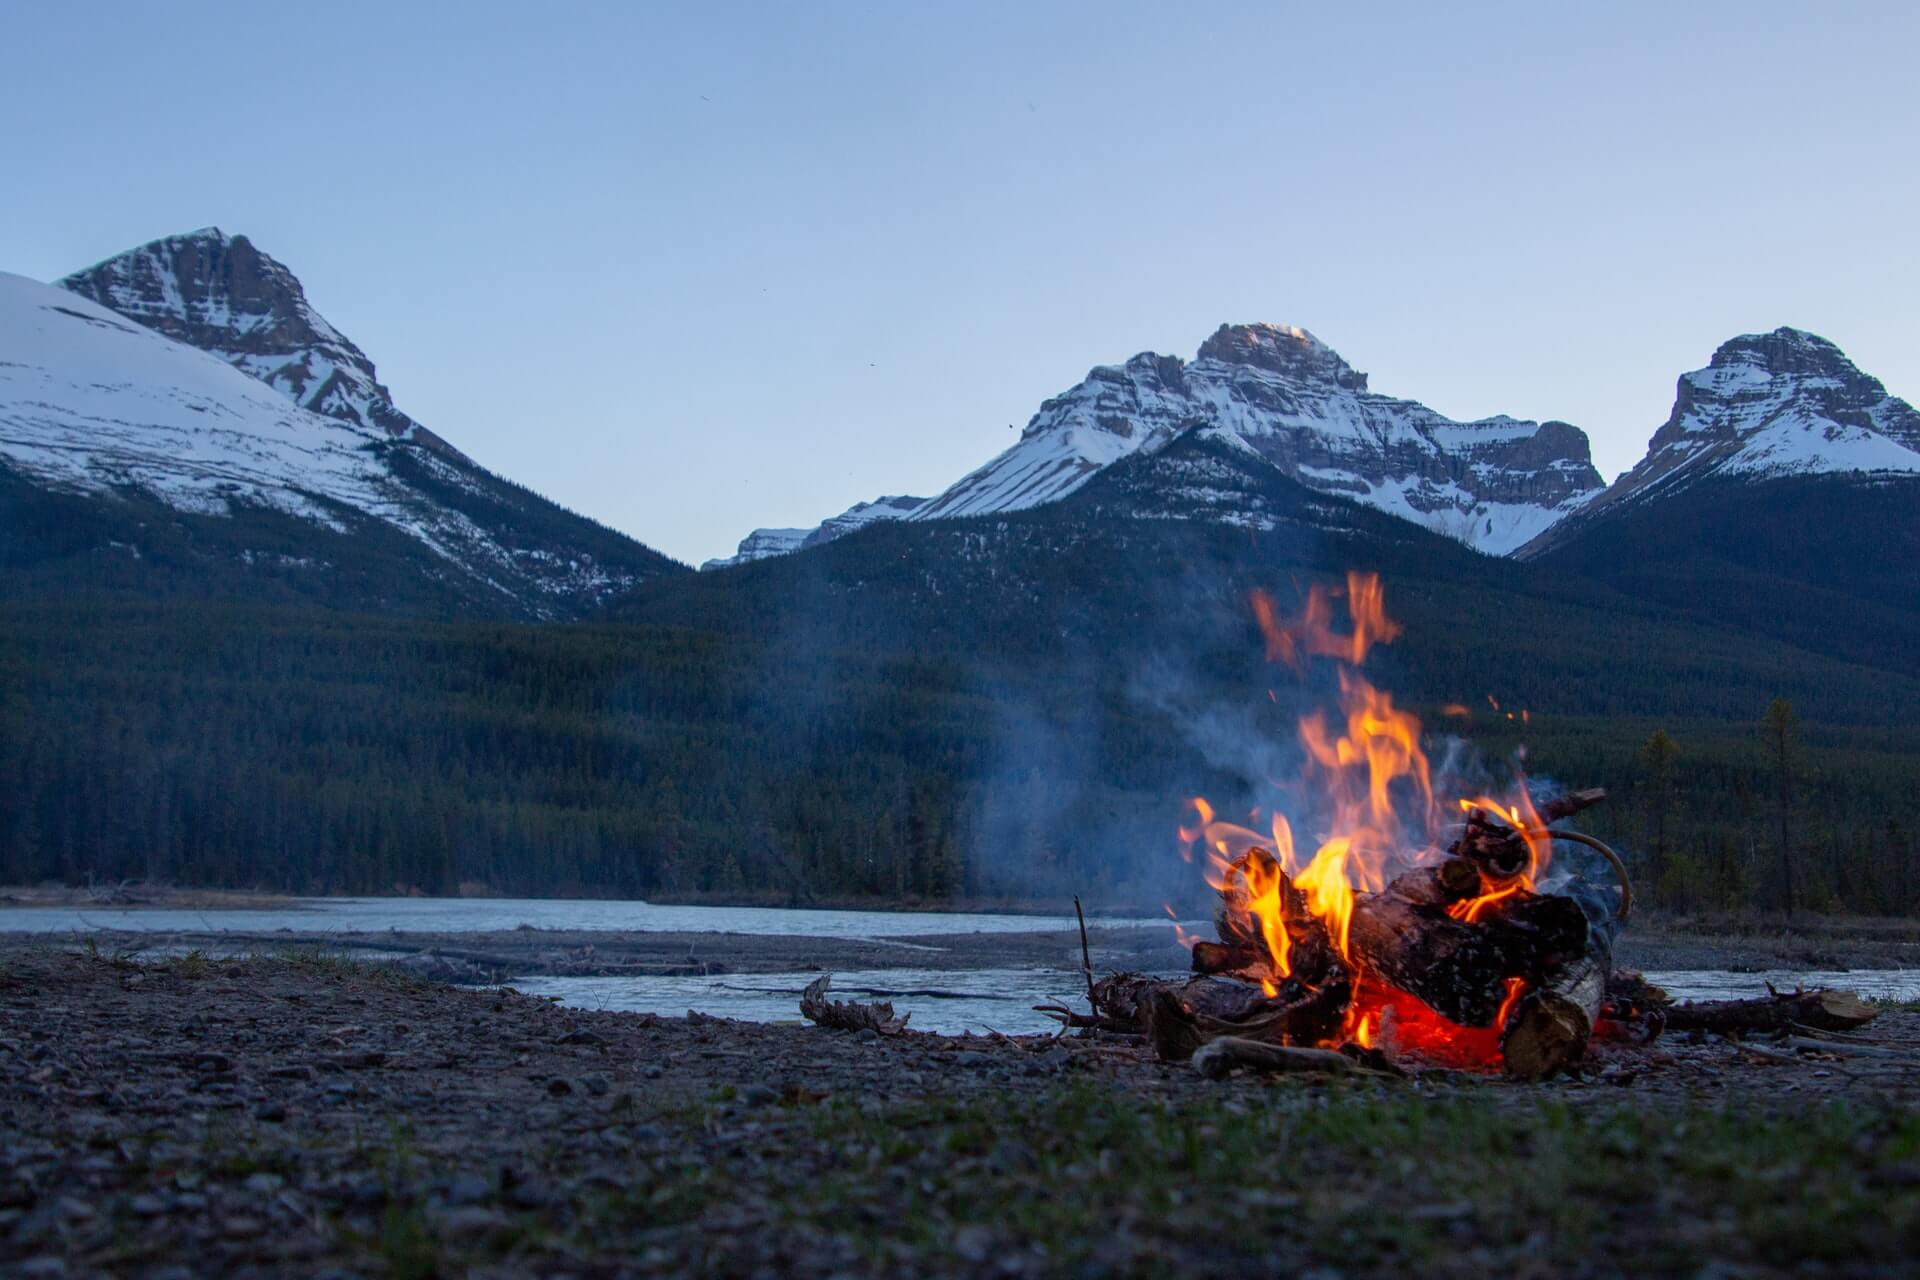 Fire burning in the evening with snow-coated mountains in the back